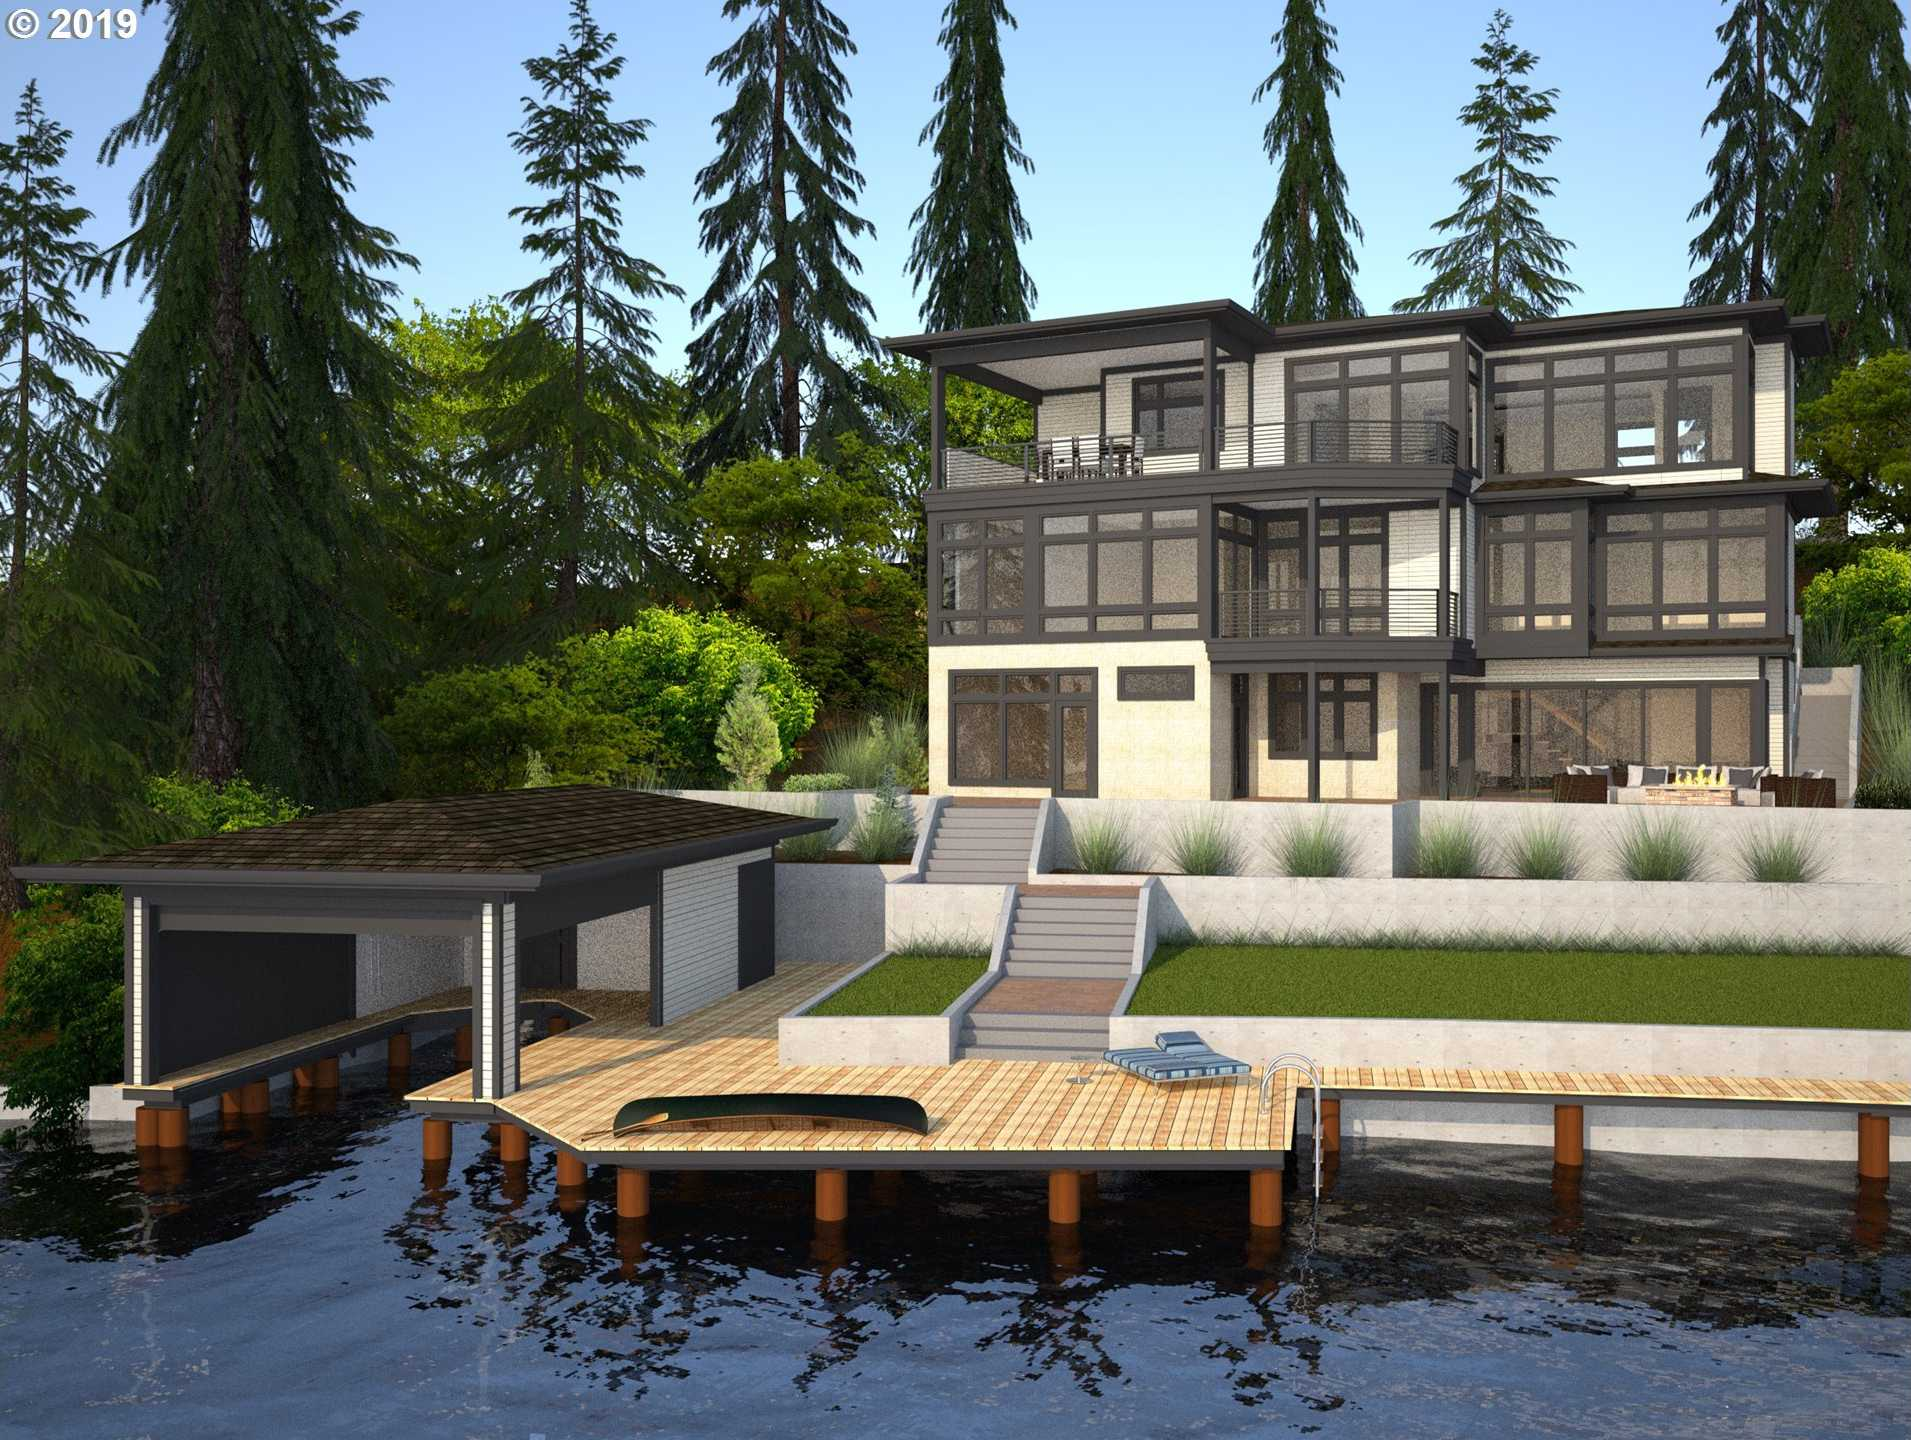 $3,988,000 - 4Br/5Ba -  for Sale in Main Lake, Lake Oswego